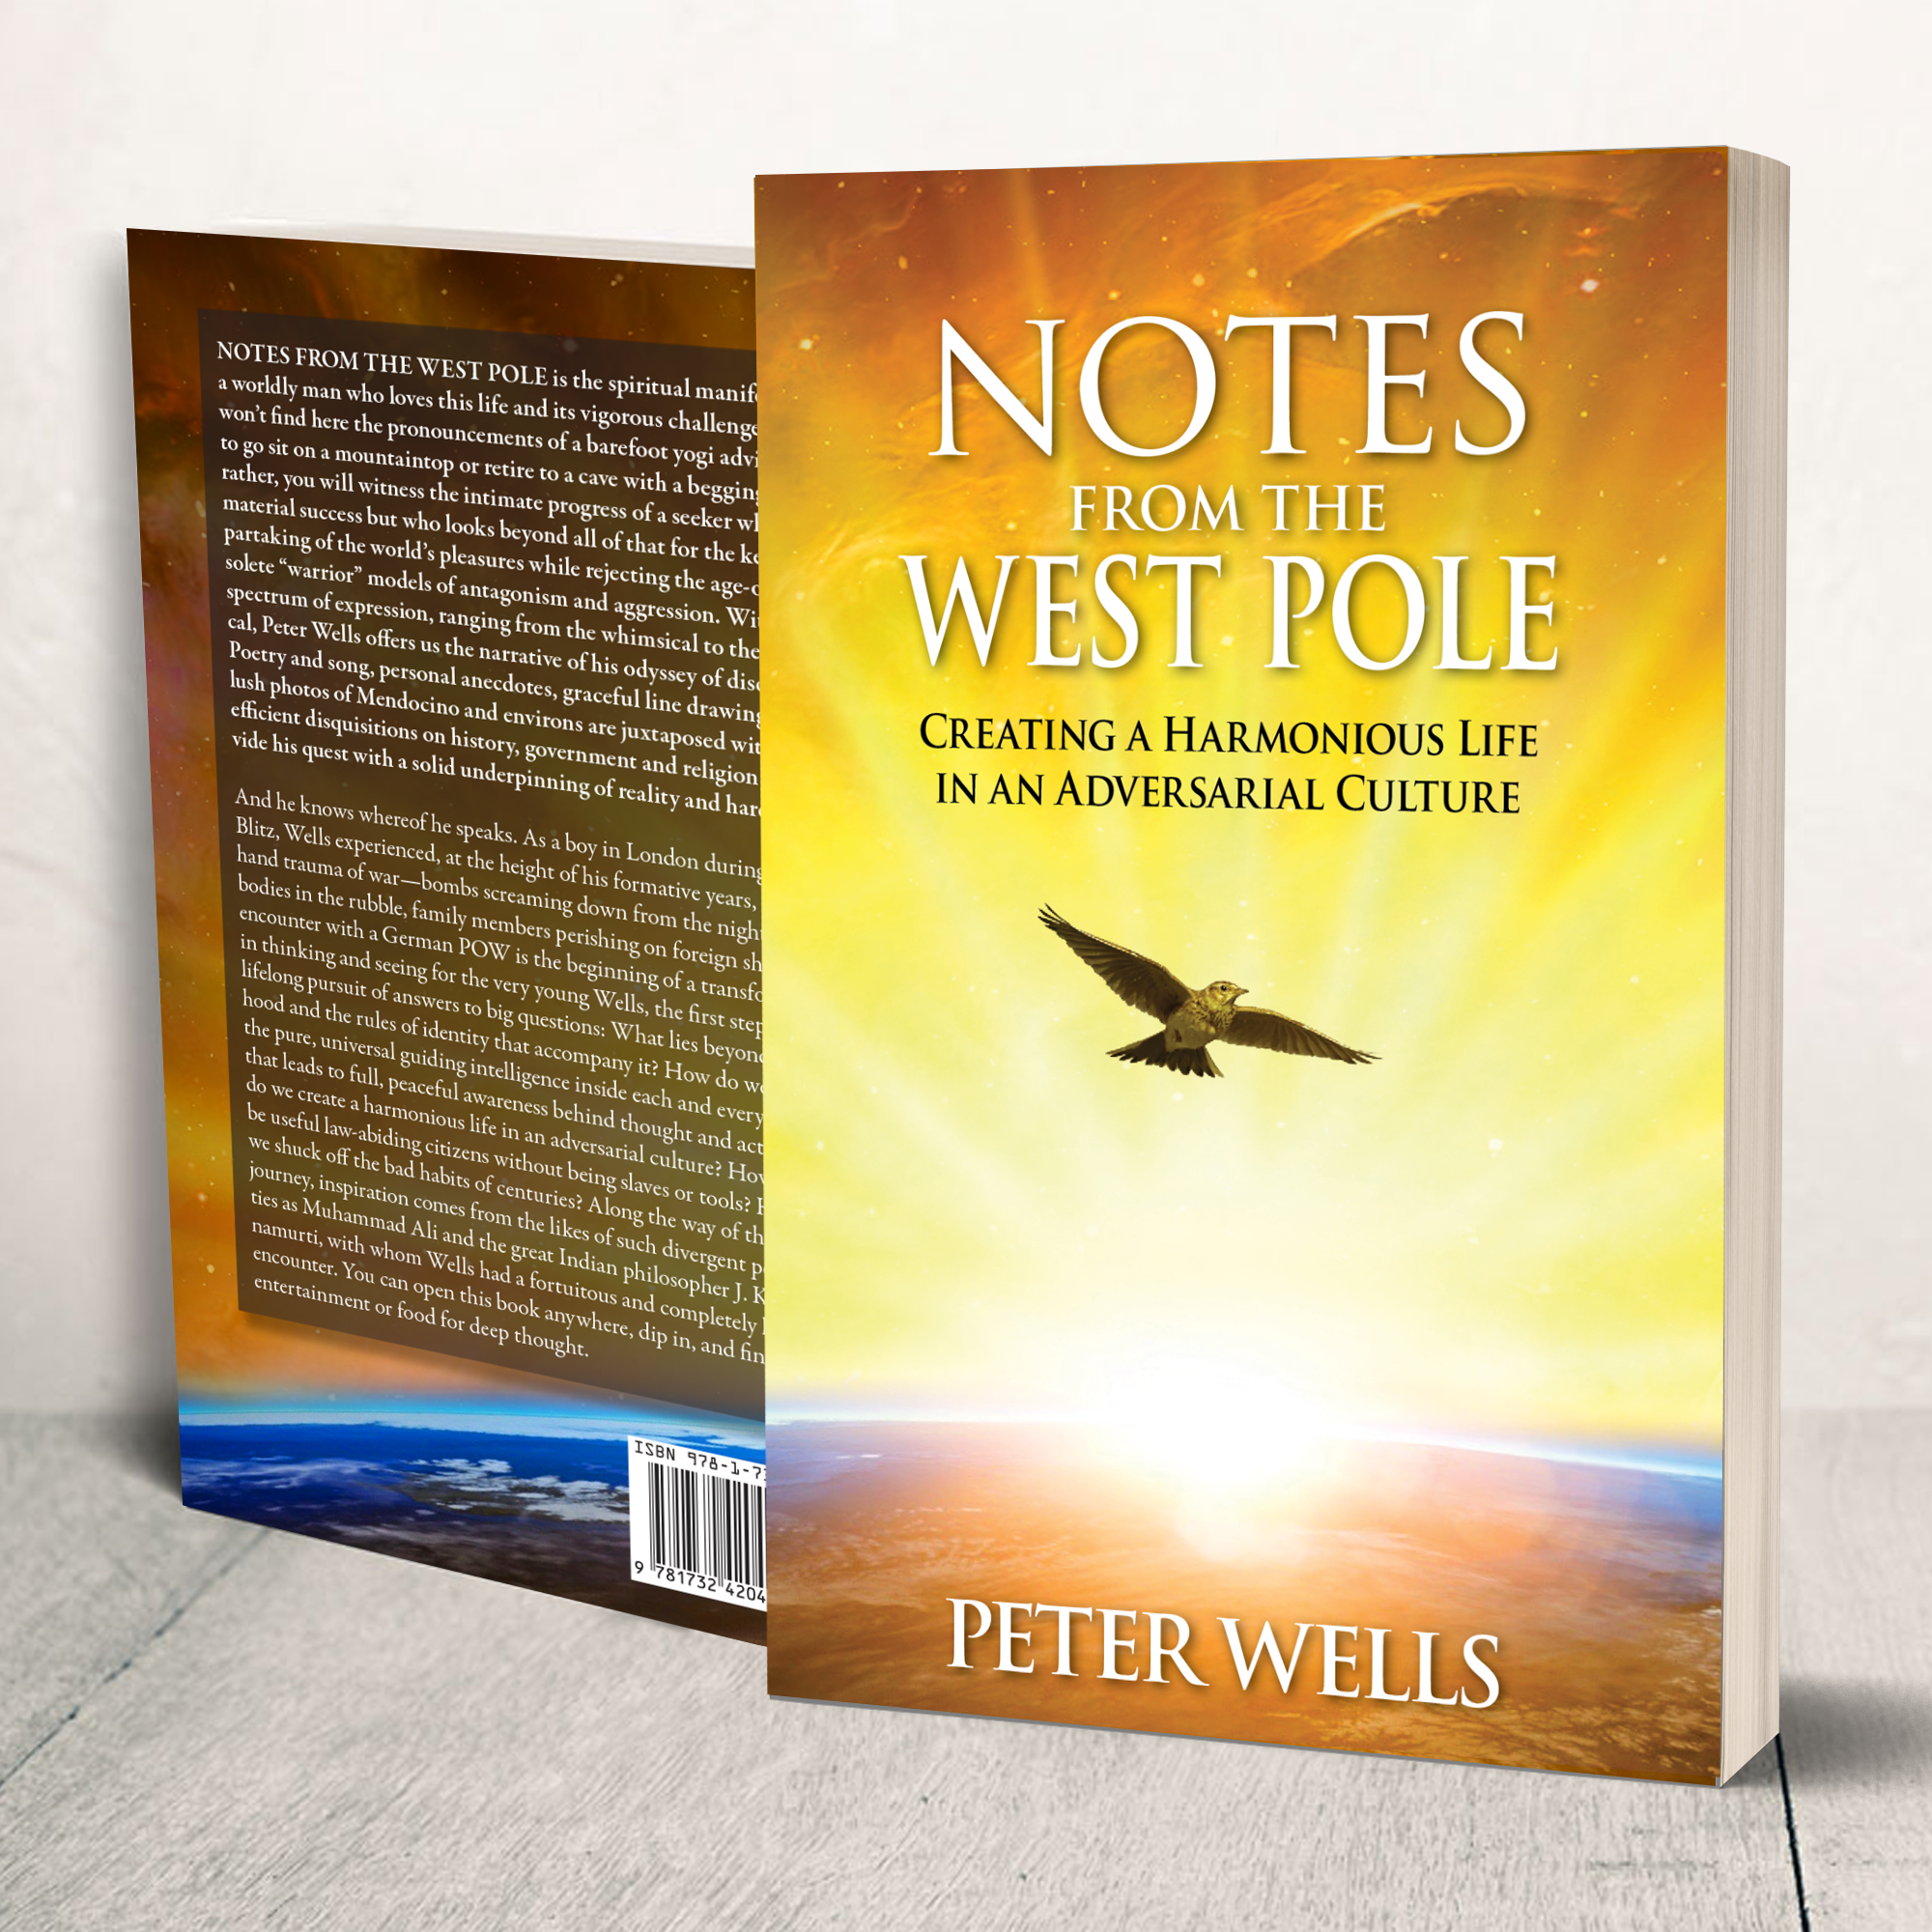 Hard cover book of Notes From The West Pole, by author Peter Wells.